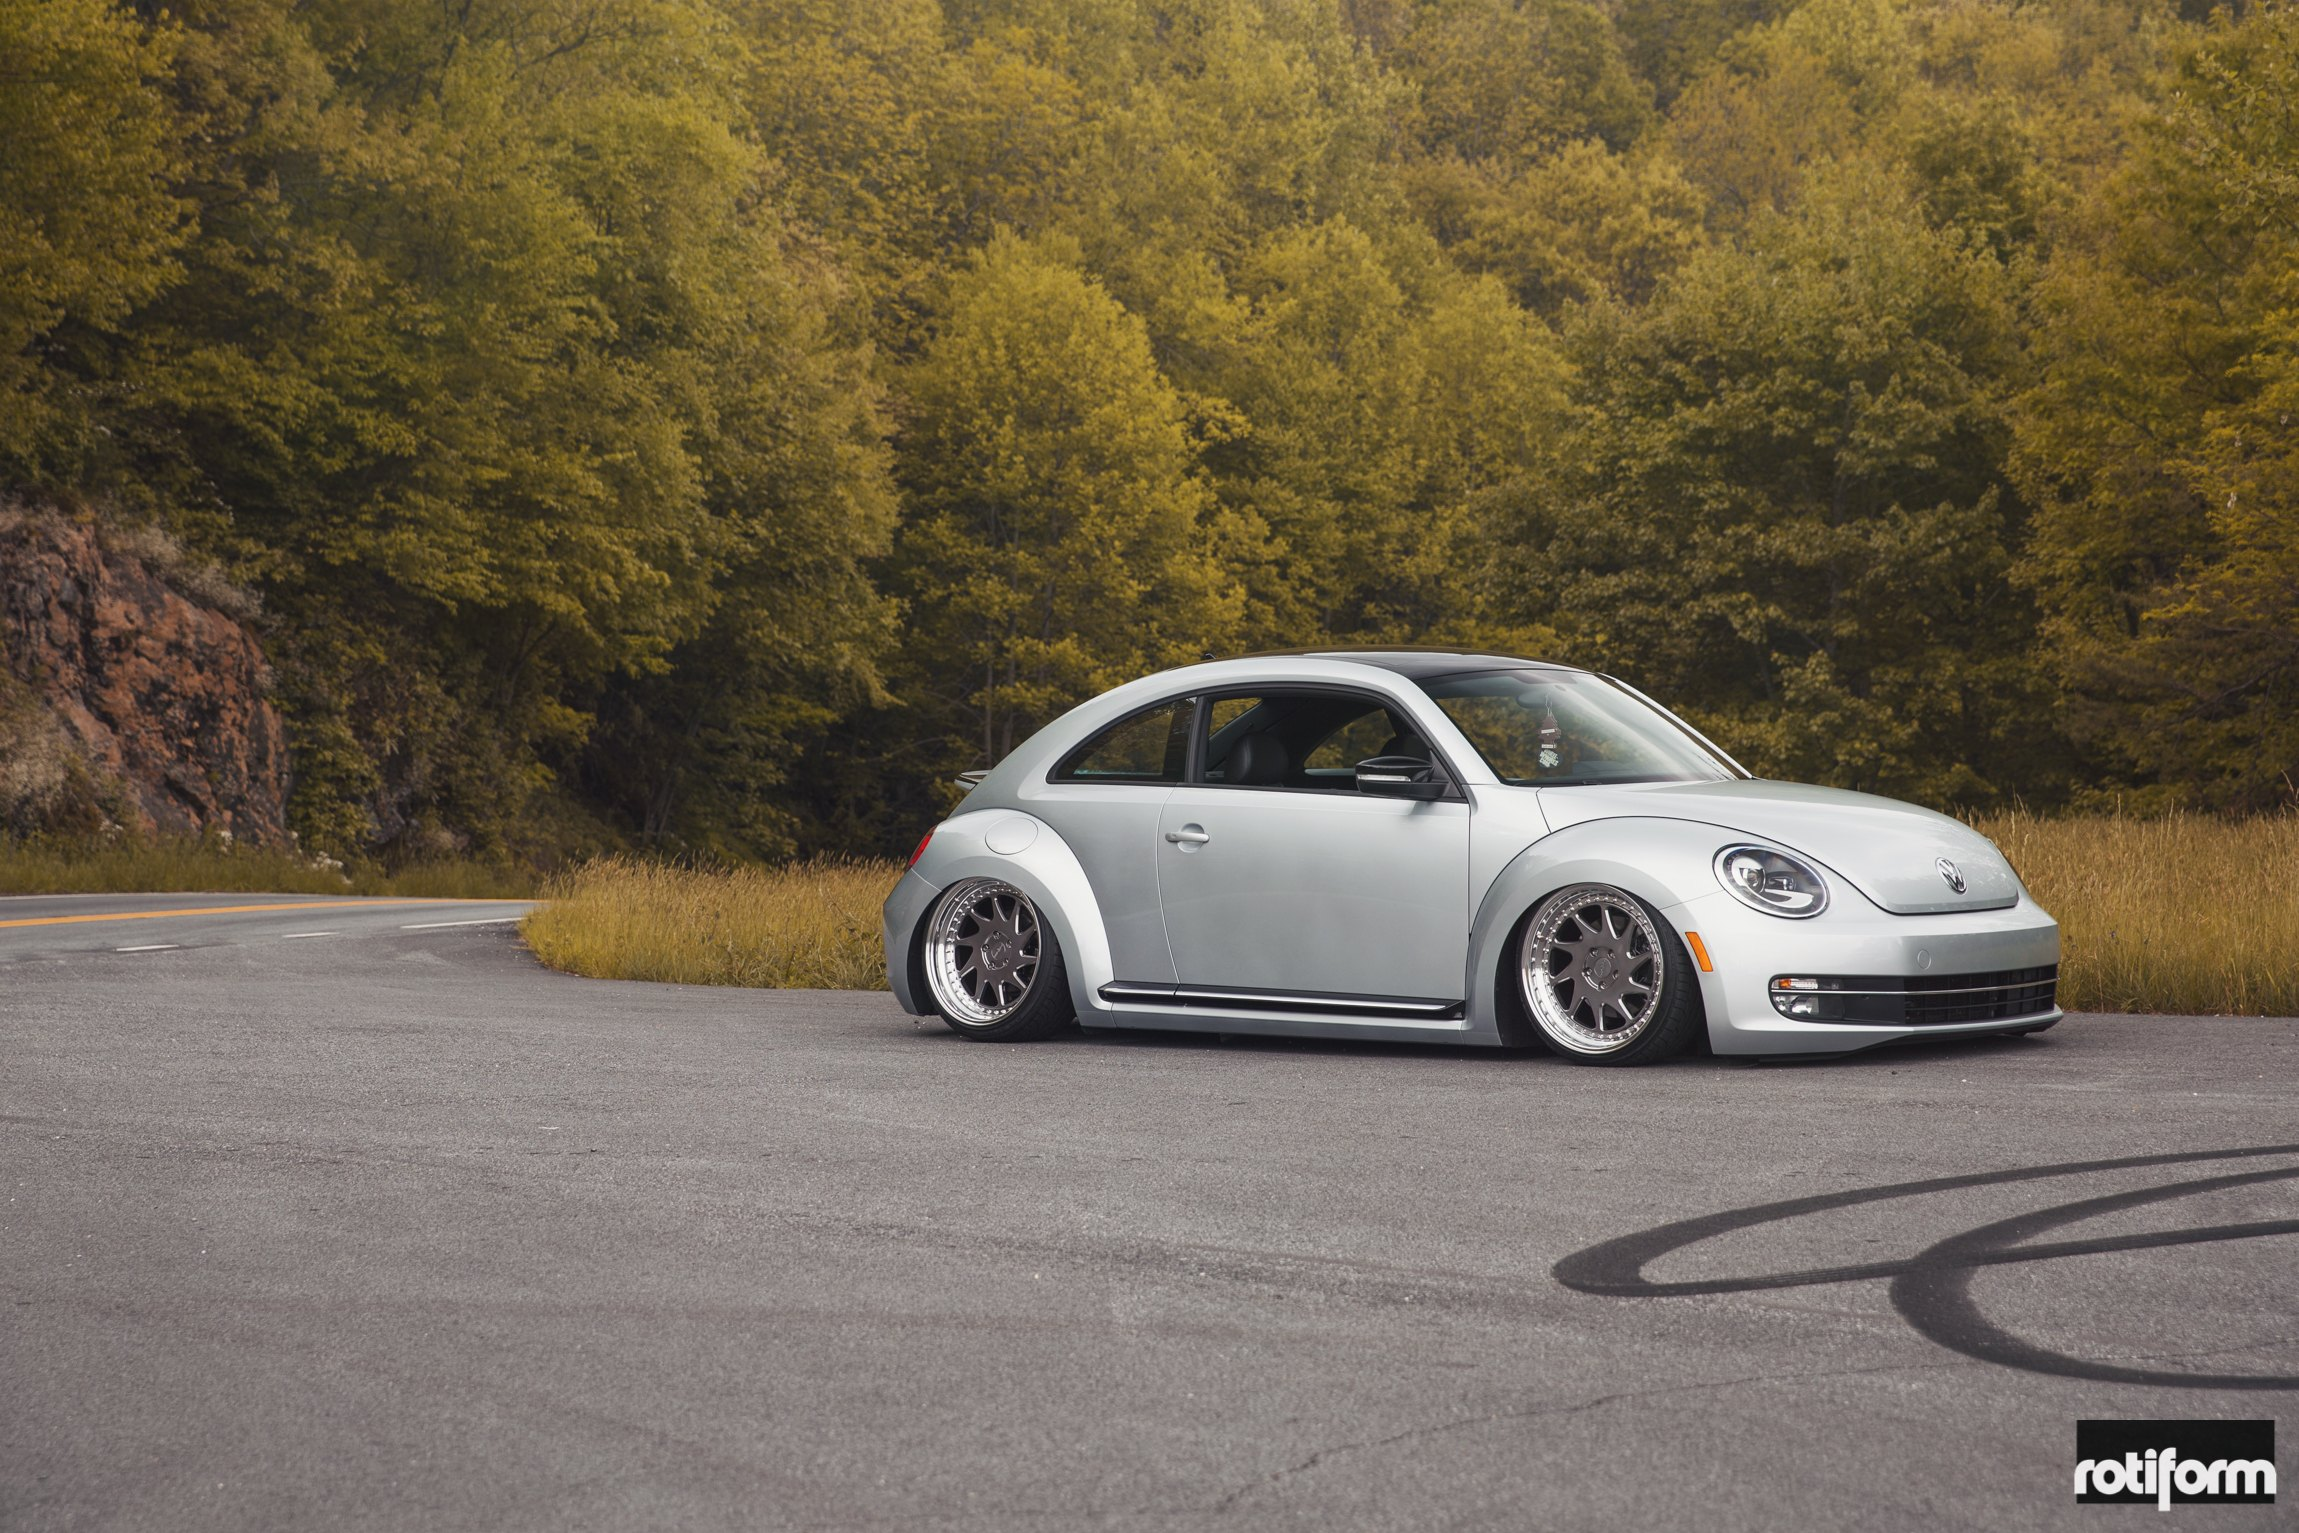 Silver VW Beetle with Aftermarket Bodyside Moldings - Photo by Rotiform